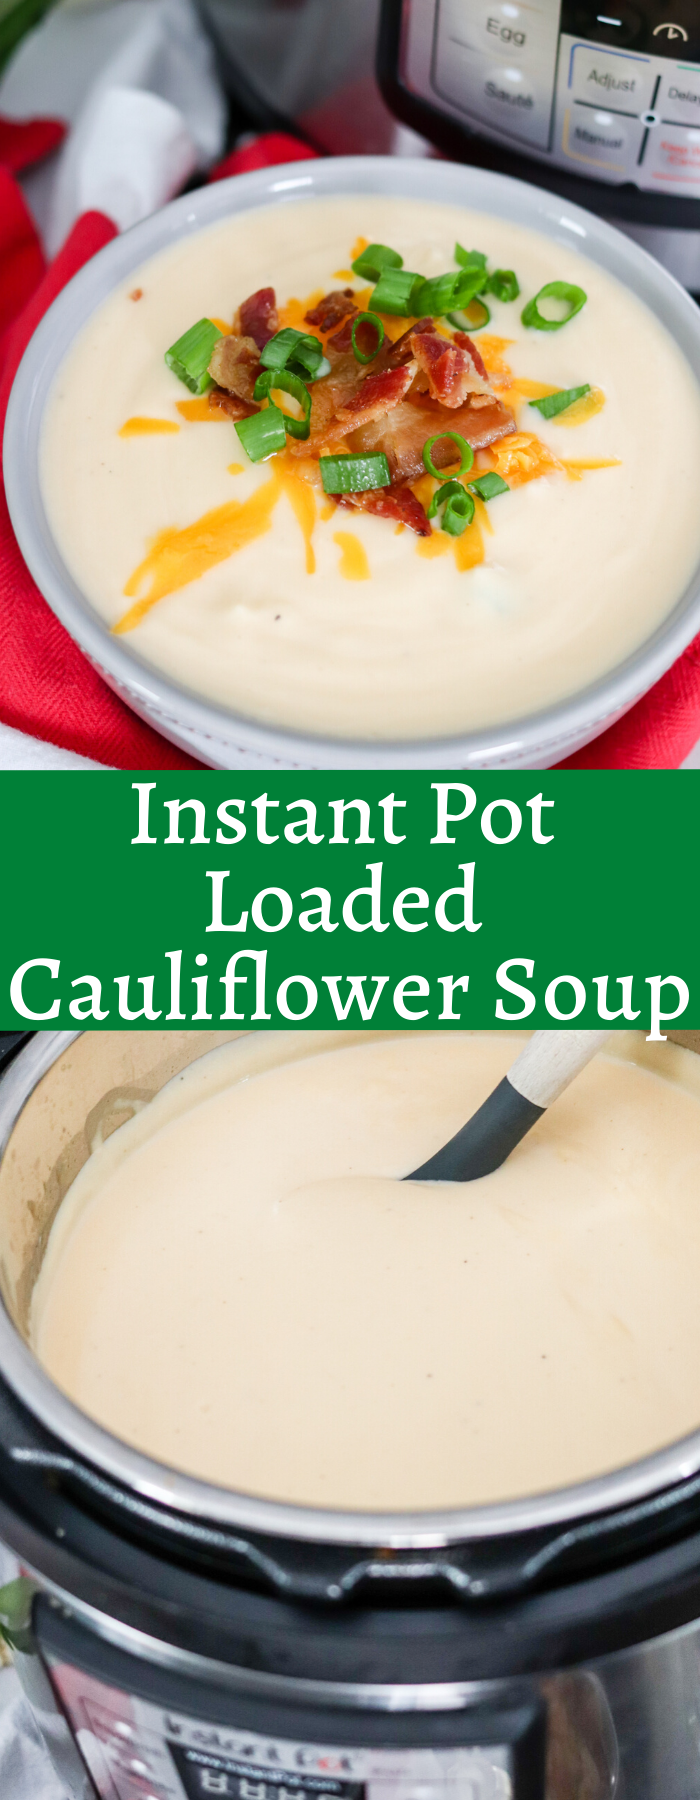 Creamy and delicious, Loaded Cauliflower soup is rich, hearty, and healthy! This low carb option is great for KETO, Atkins, South Beach or any diet! Only 212 calories and 11g carbs per serving! Also optional directions to cook on the stovetop!